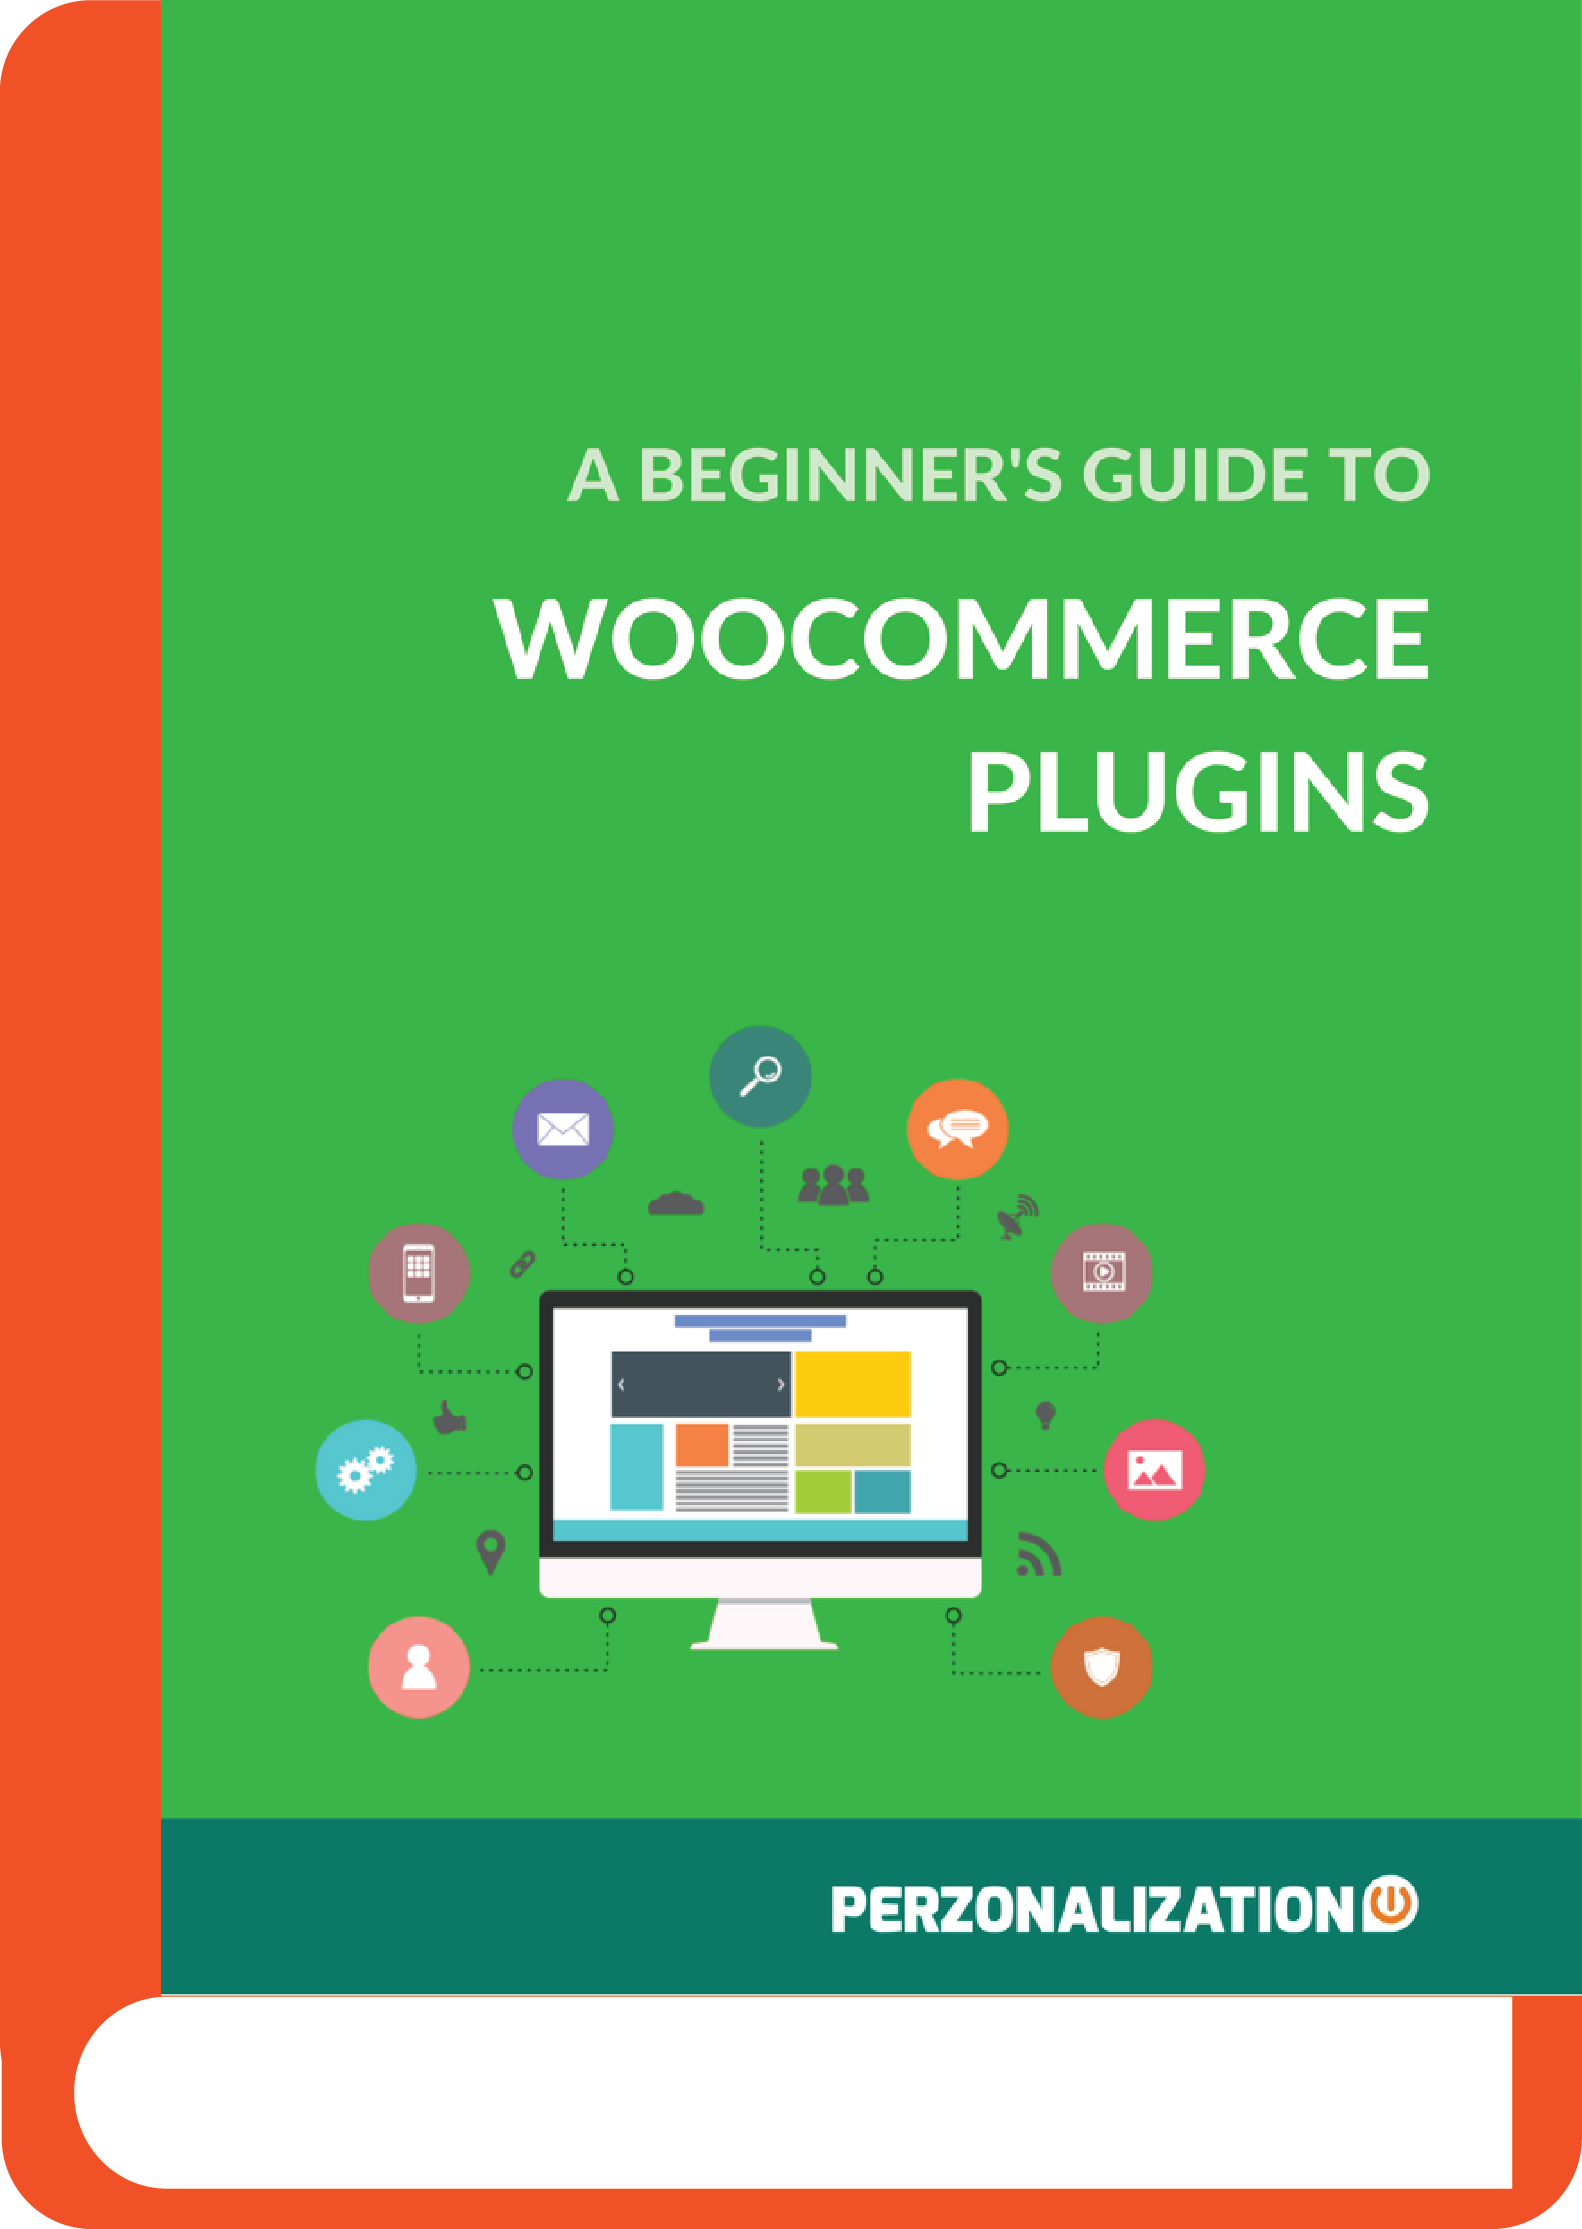 From shipping and stock maintenance to financial transactions, WordPress WooCommerce plugins help online businesses in many ways. Find out more in this free eBook!